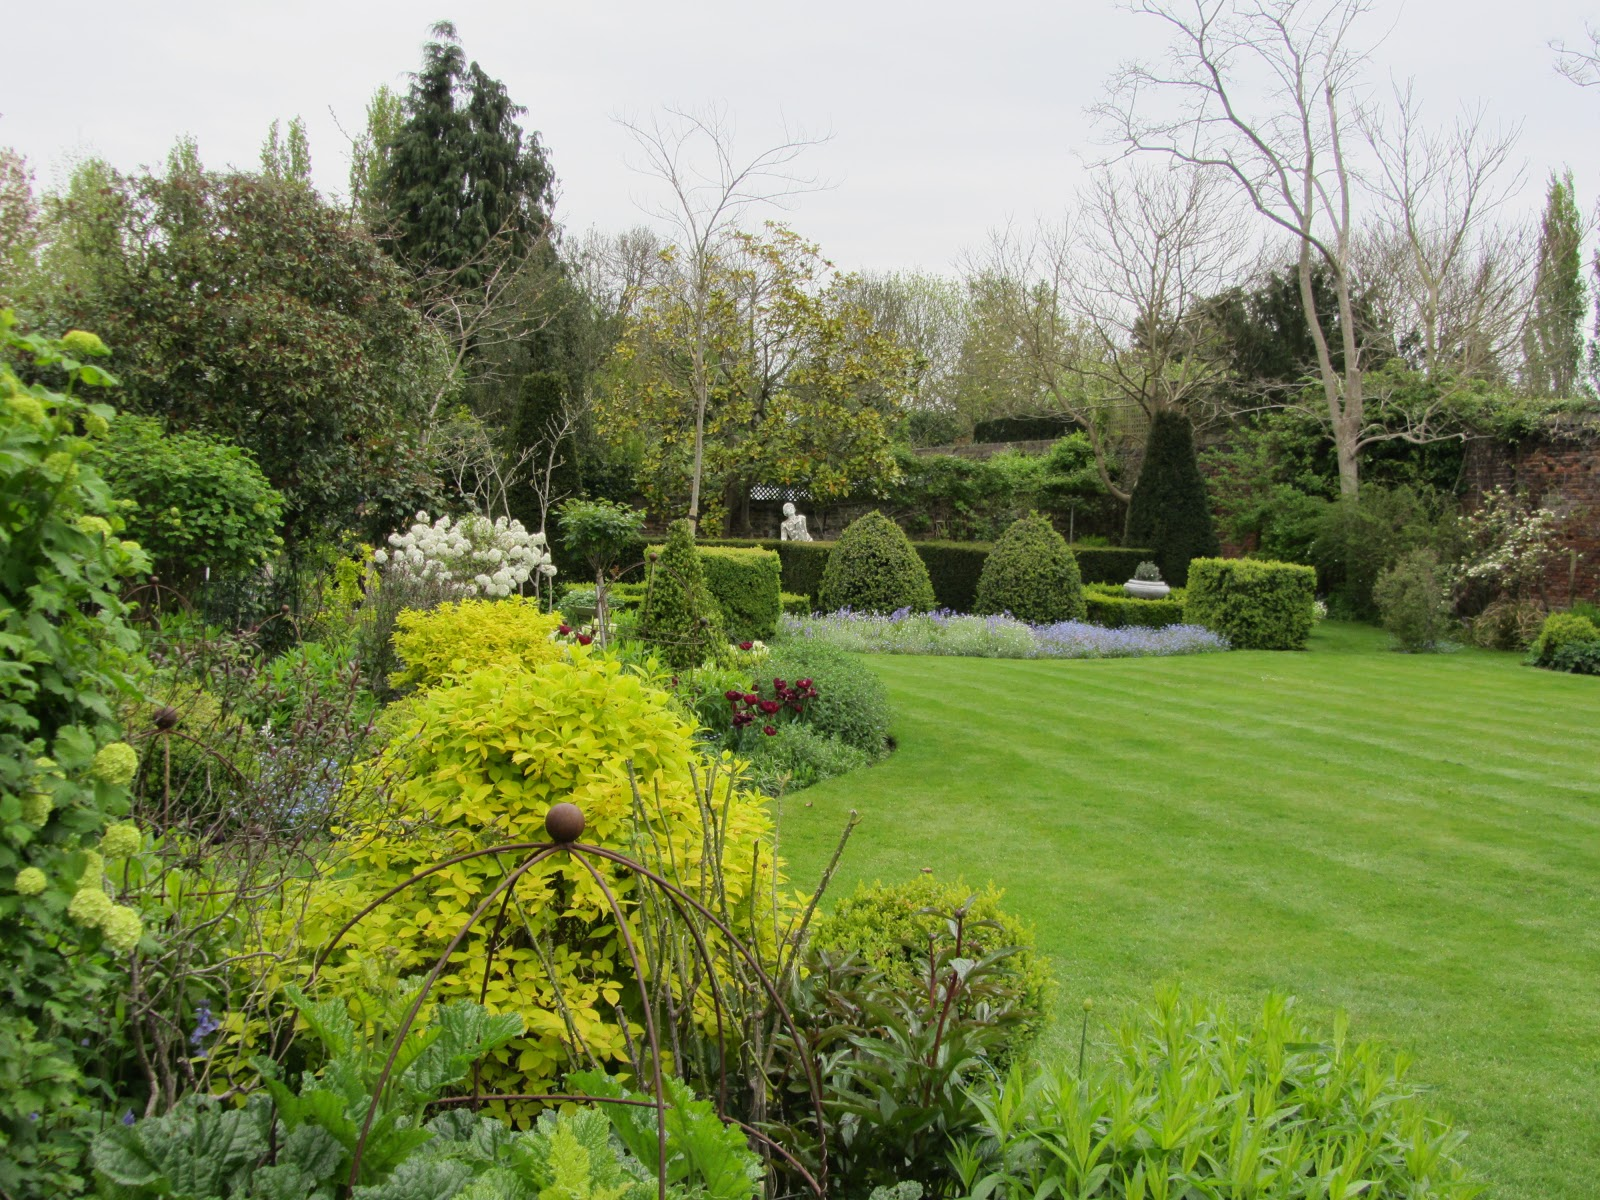 Ham photos rear garden at ormeley lodge - Moving A South And Back Towards The House We Can Look Back Over The Lawn Towards The Sunken Garden We Have Just Left From Here The White Statue That Was So